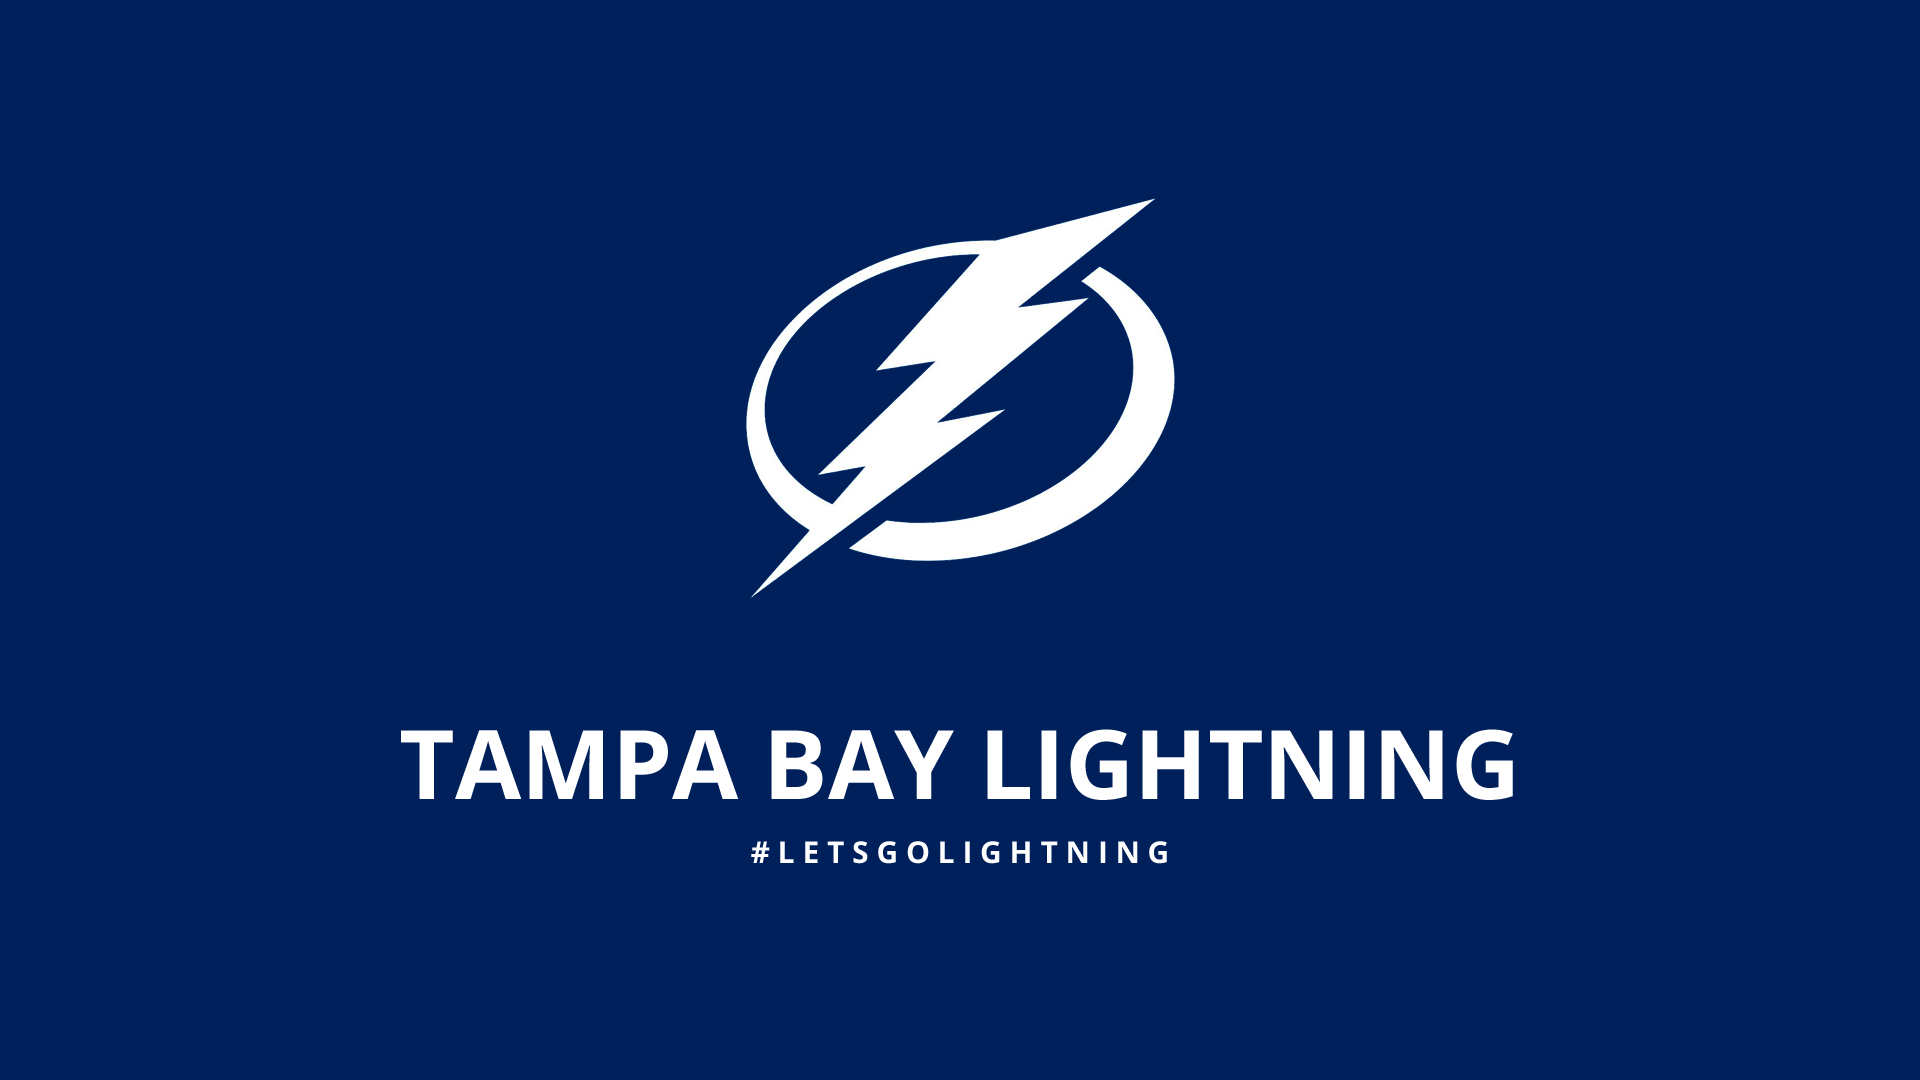 Minimalist Tampa Bay Lightning wallpaper by lfiore on DeviantArt